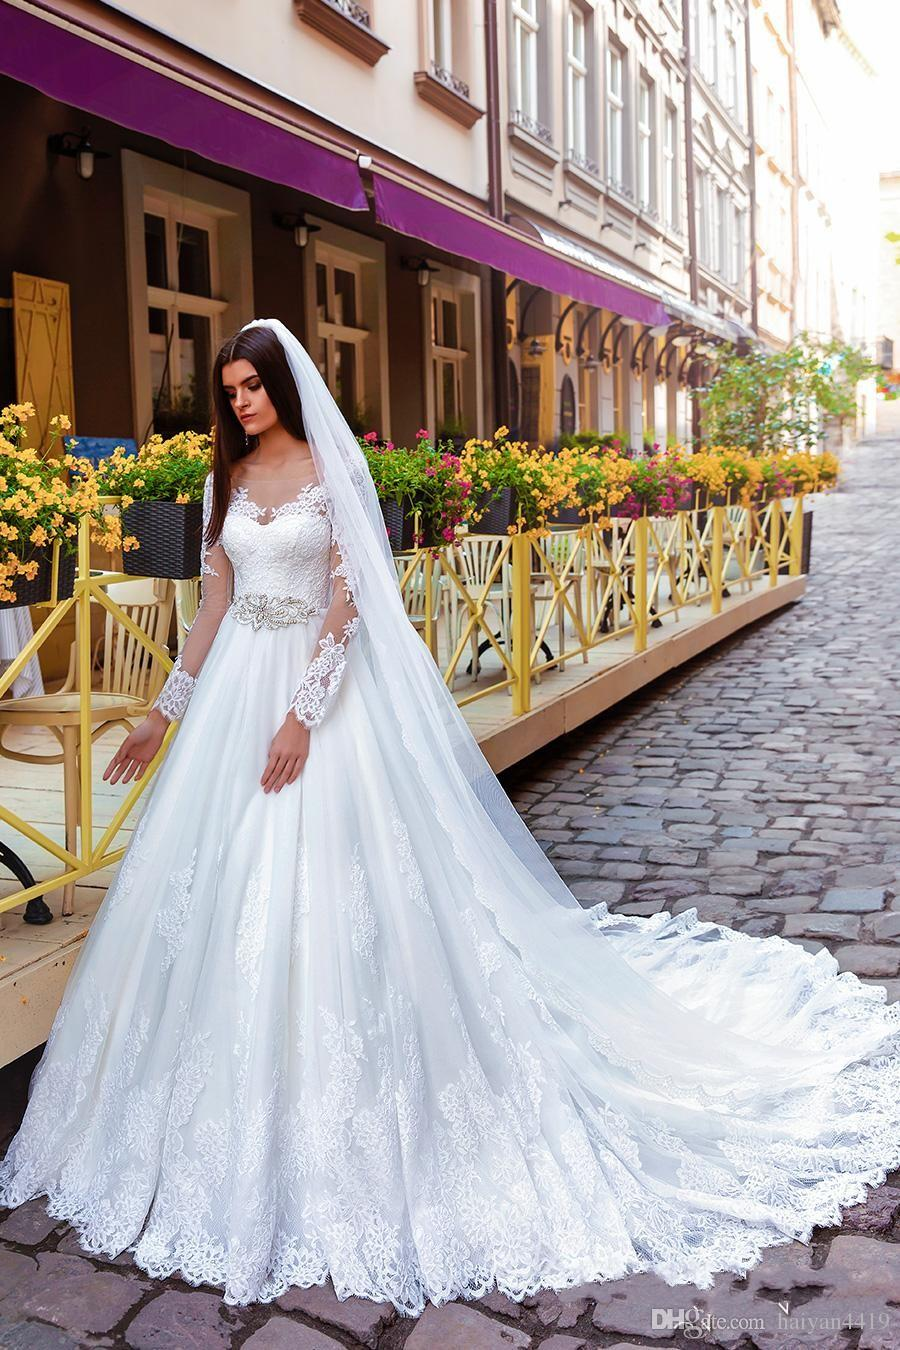 2016 New Cheap Modern A Line Wedding Dresses Scoop Neck Long Sleeves Lace Appliques Beaded Tulle Court Train Plus Size Formal Bridal Gowns